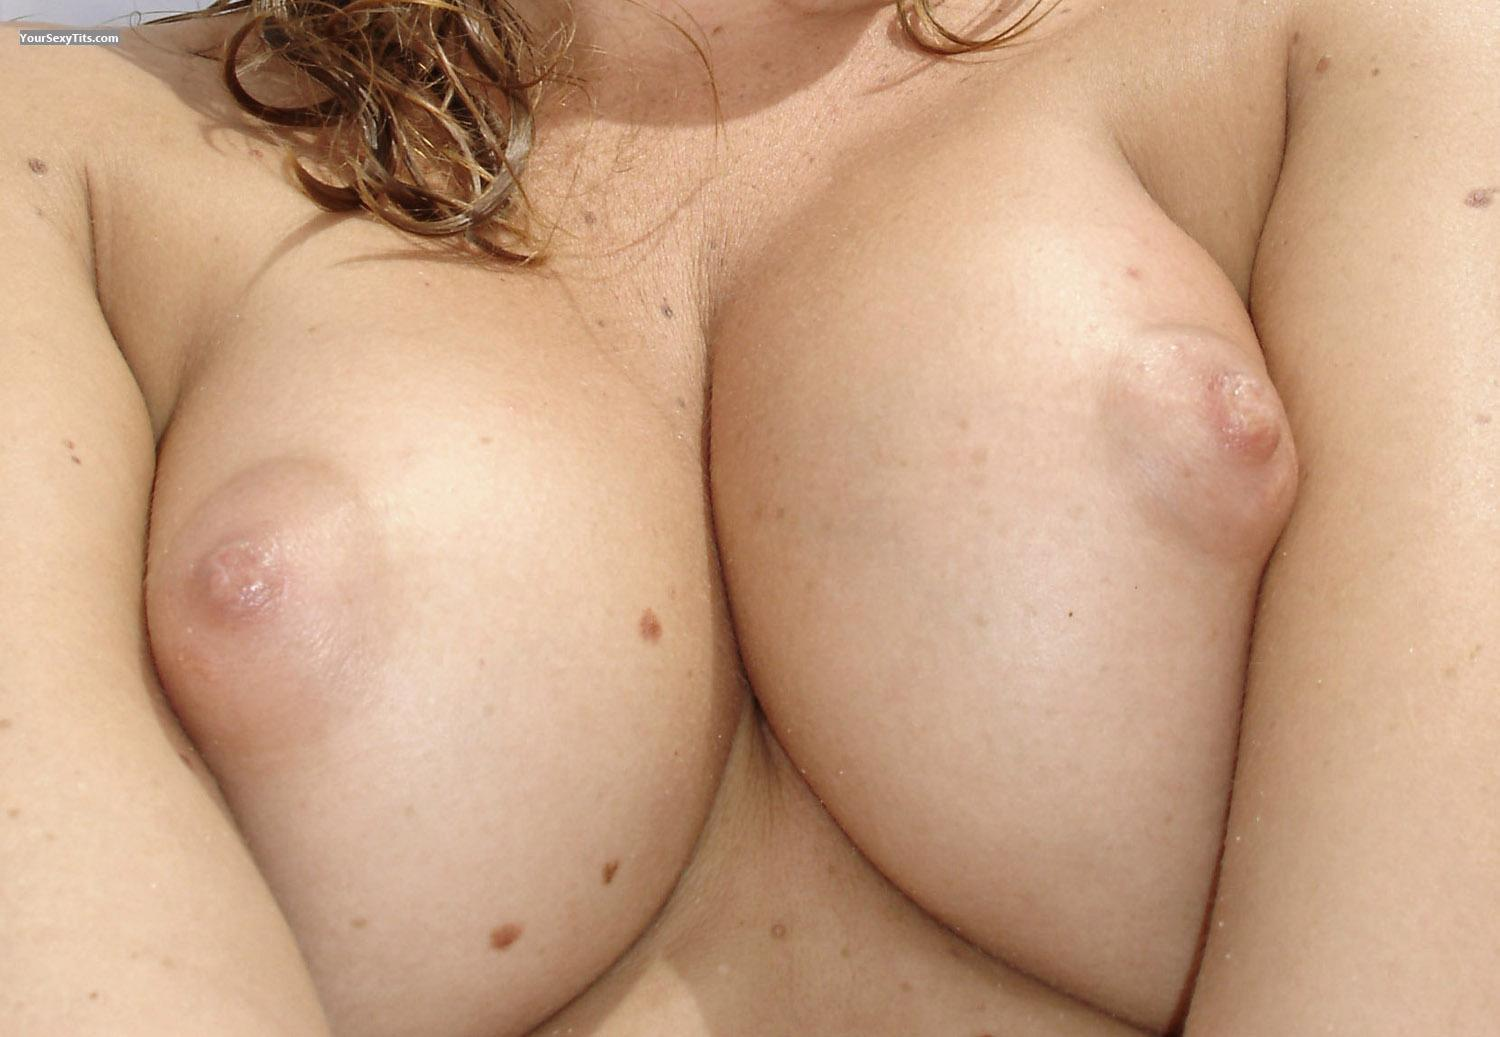 Tit Flash: My Medium Tits (Selfie) - Camel from Switzerland